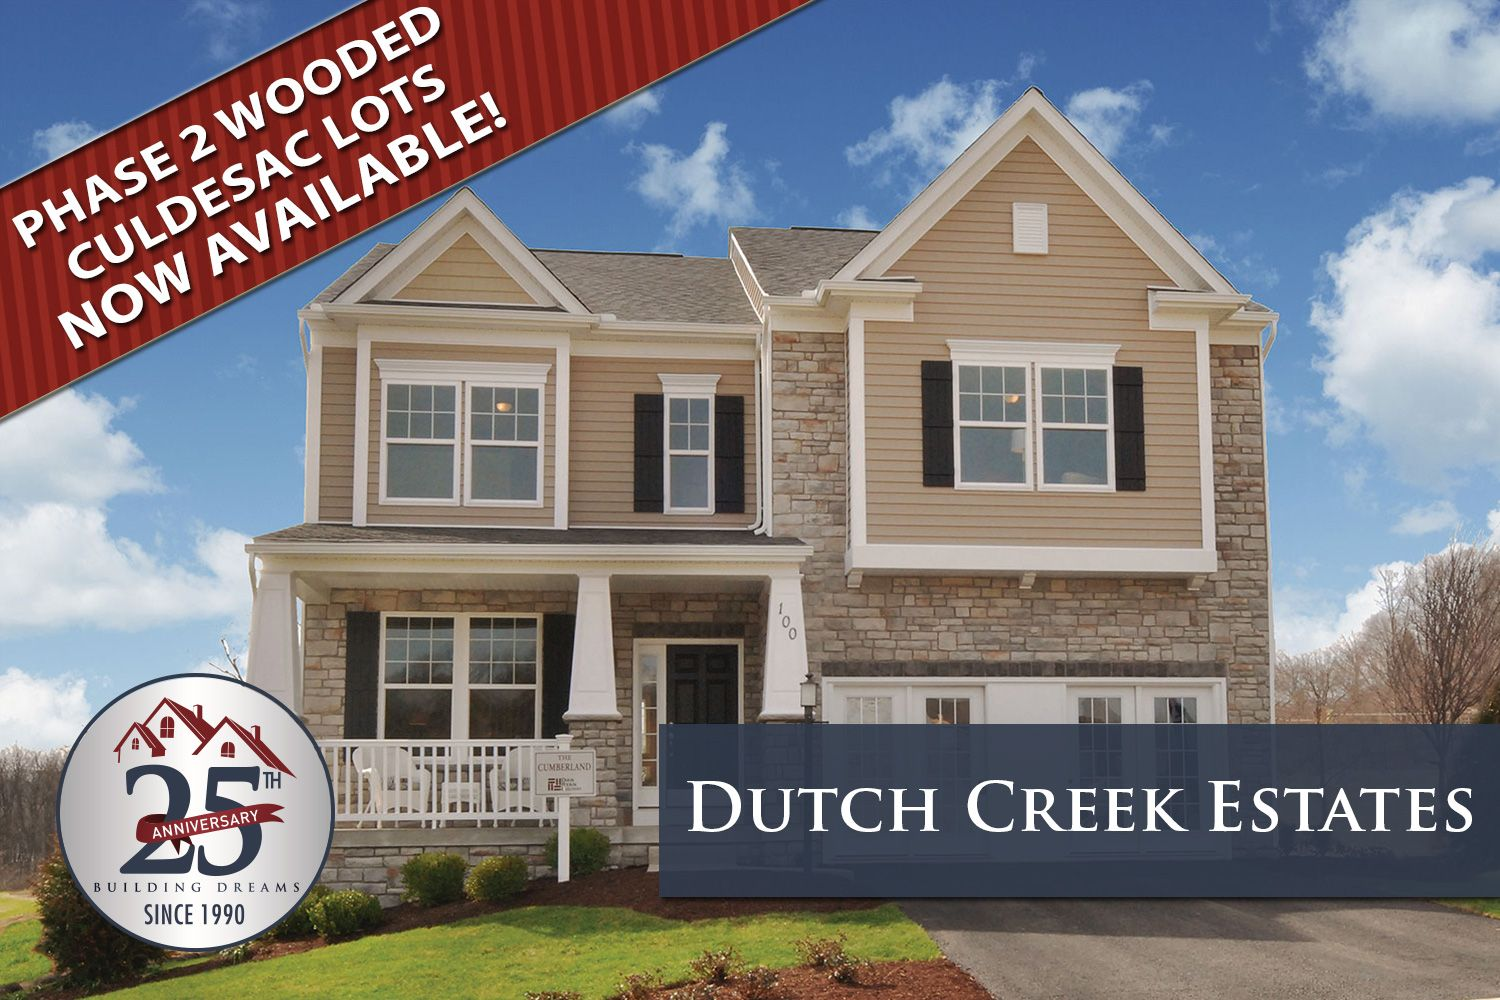 Dutch Creek Estates